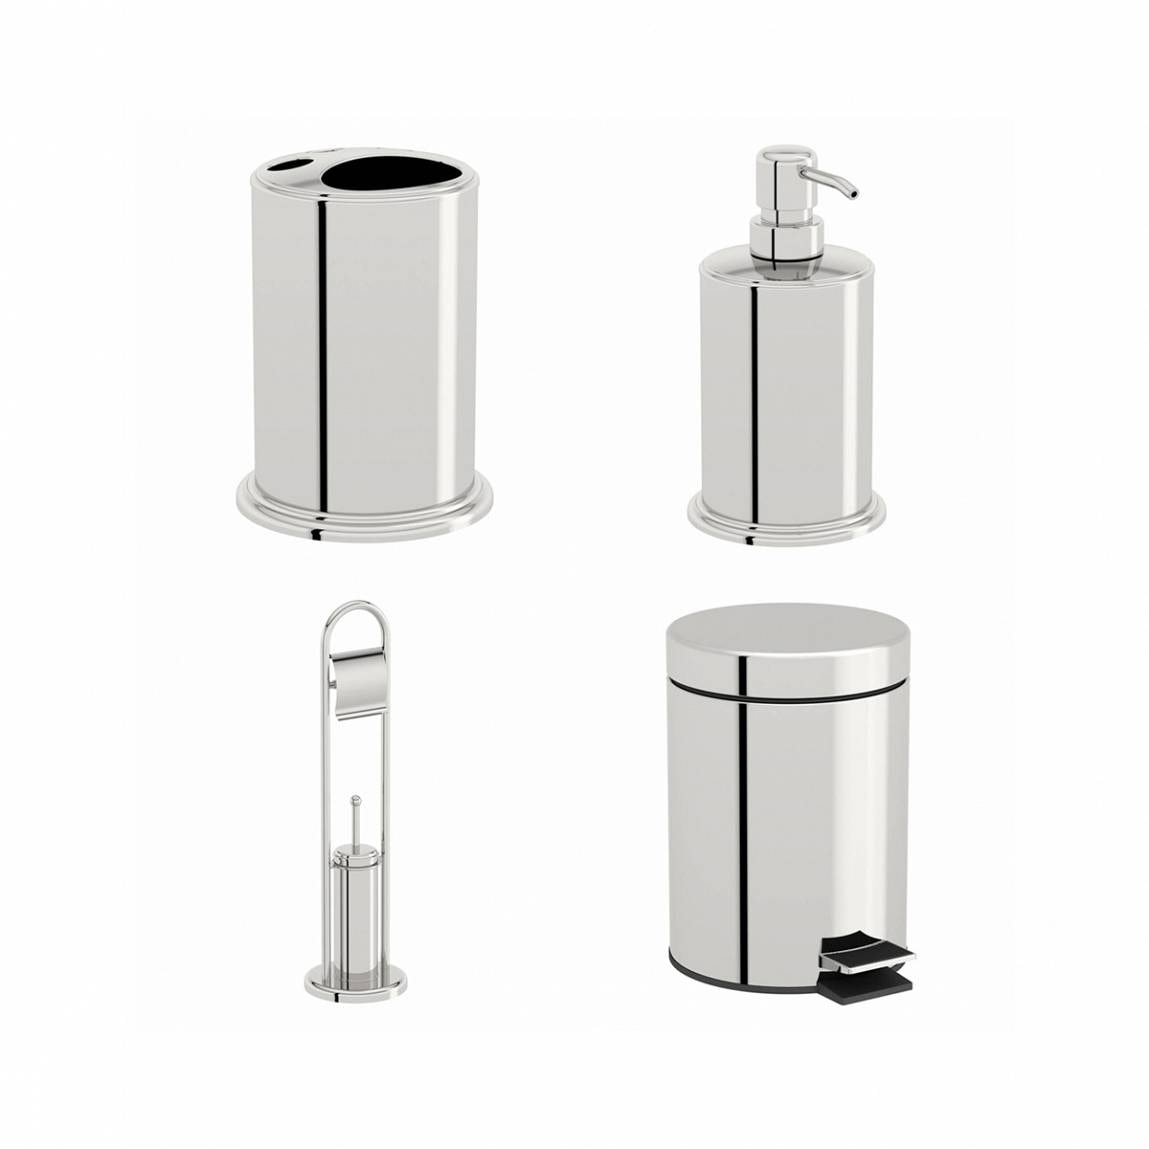 Orchard Options stainless steel 4 piece accessory set